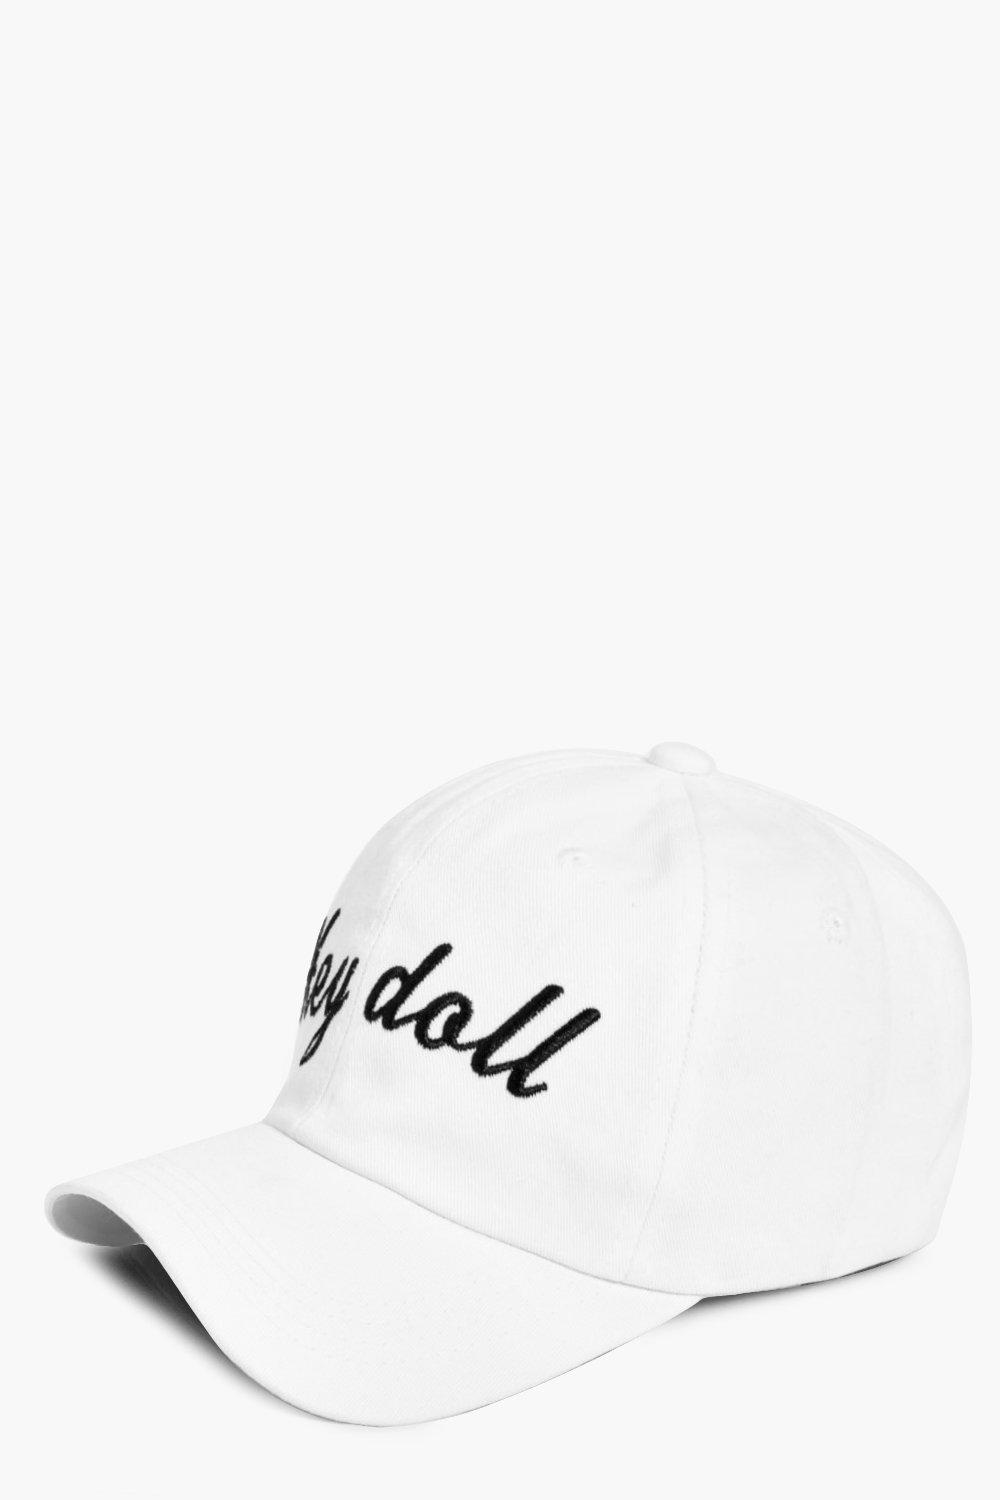 Hey Doll Slogan Baseball Cap - white - Nadia Hey D